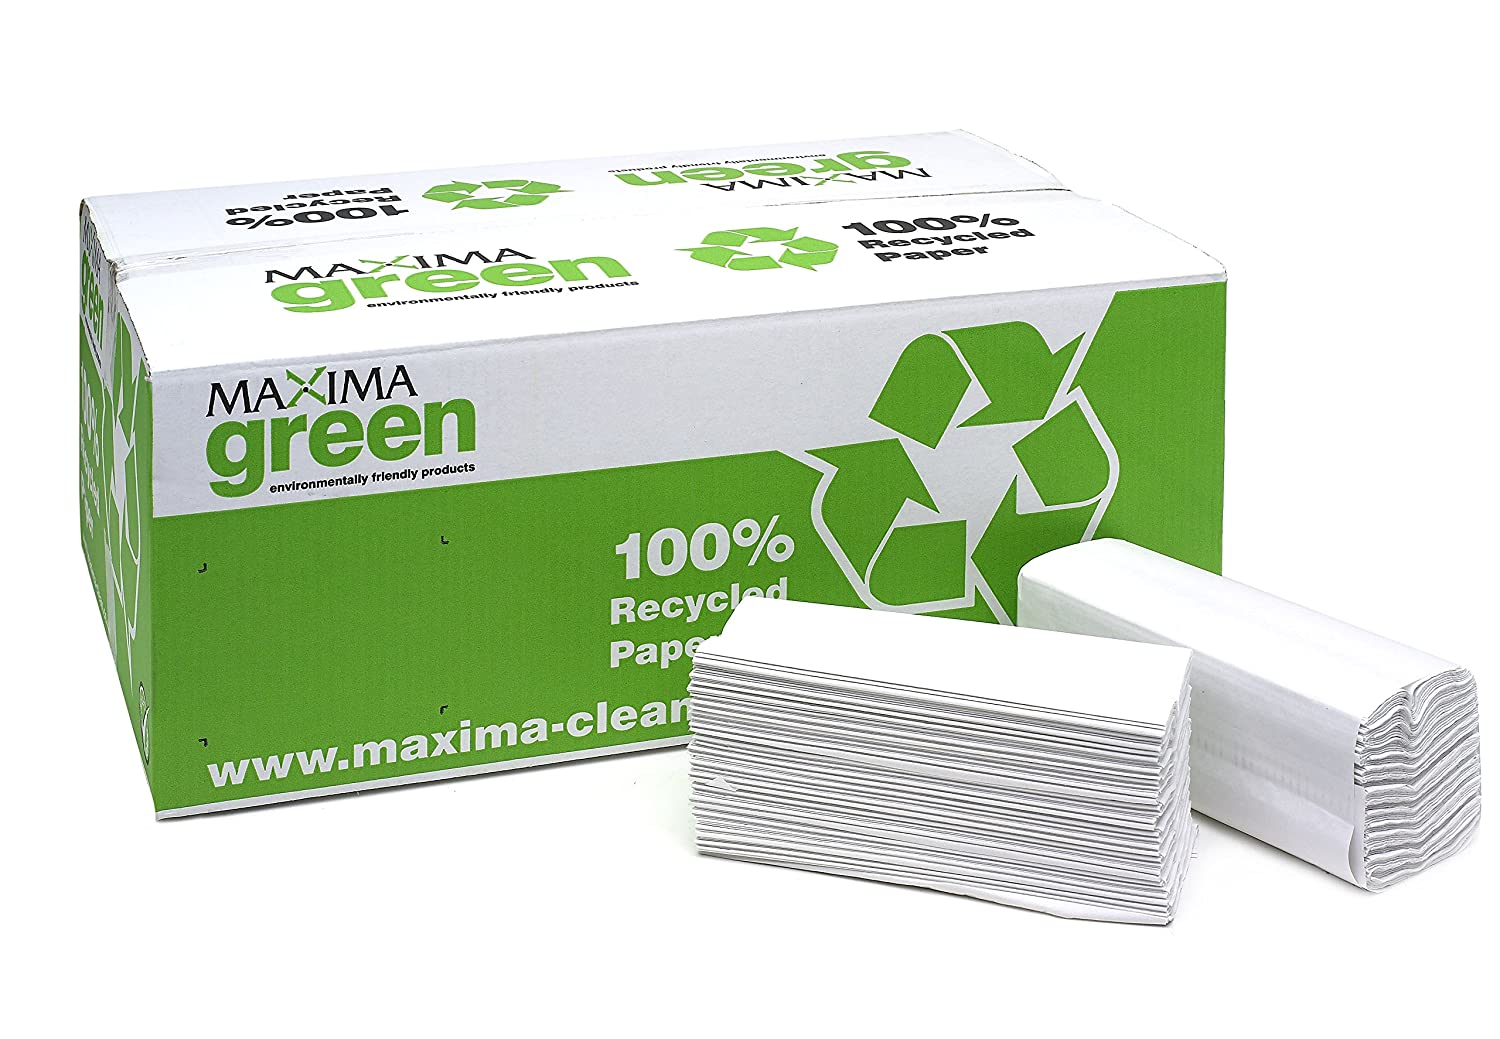 Maxgreen C-Fold Hand 2-Ply Towels Green 78292CP